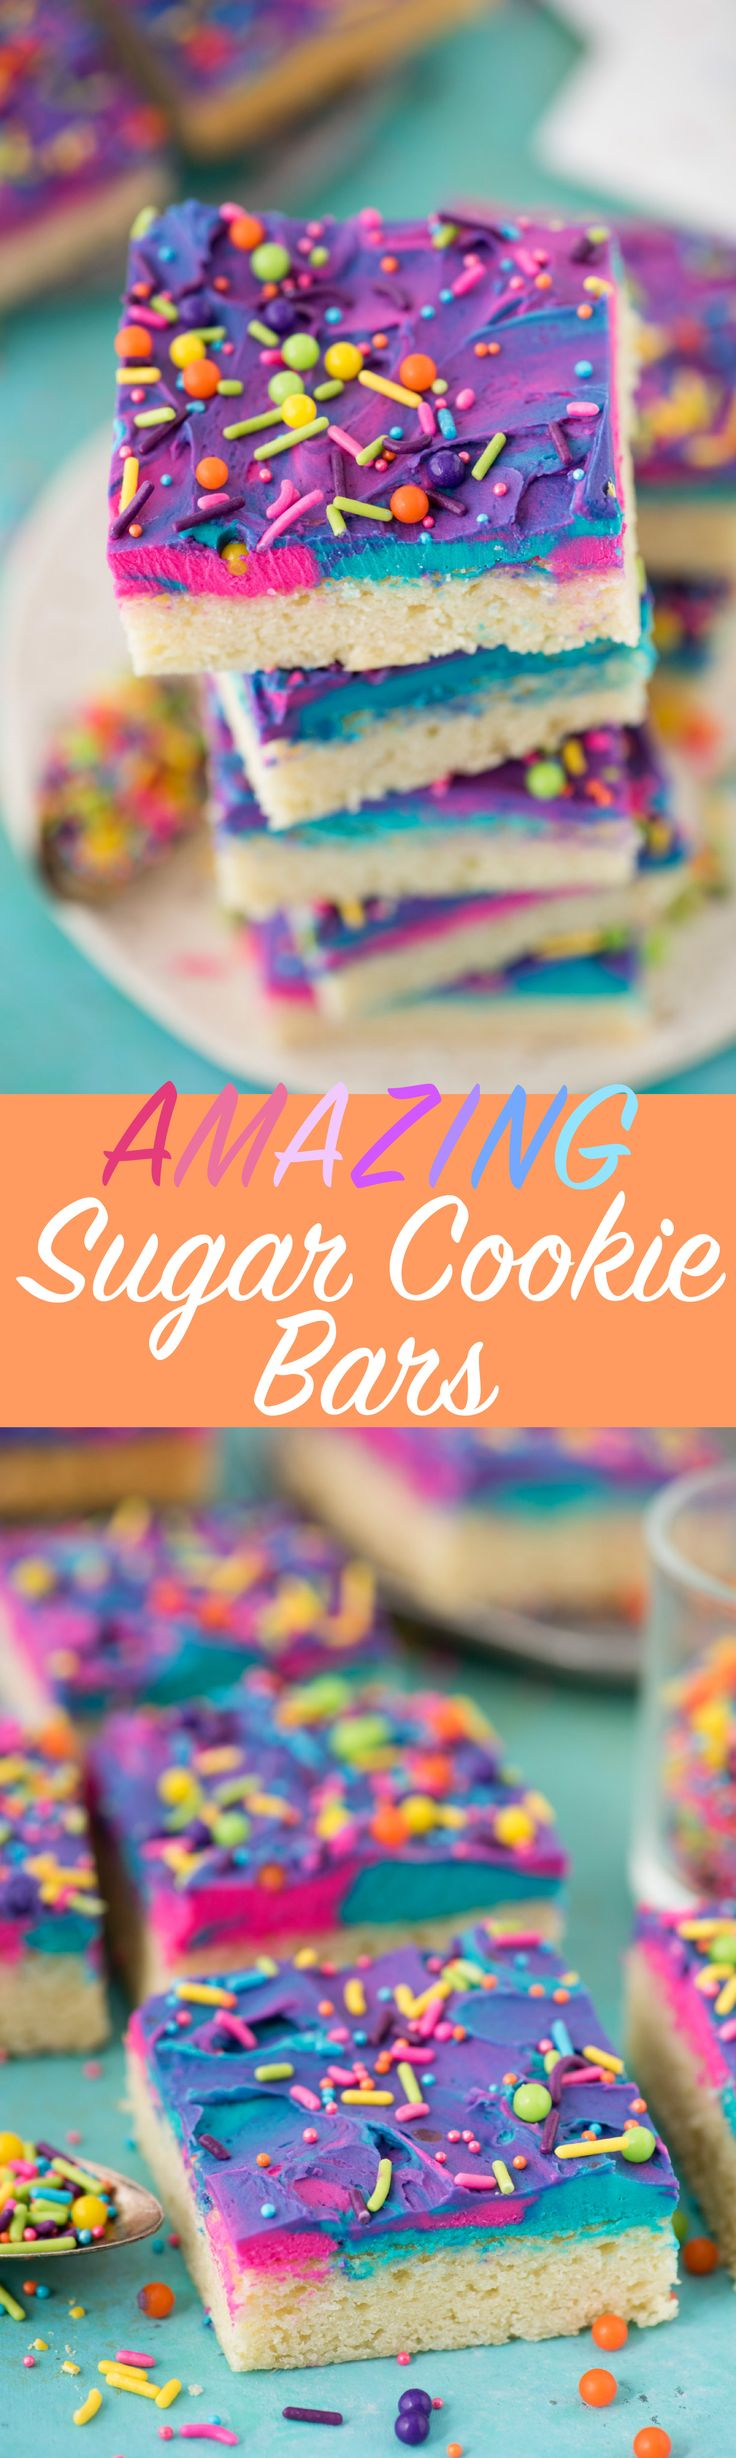 The best sugar cookie bars to serve at a party! We love making the tri-color frosting, it gets lots of rave reviews!